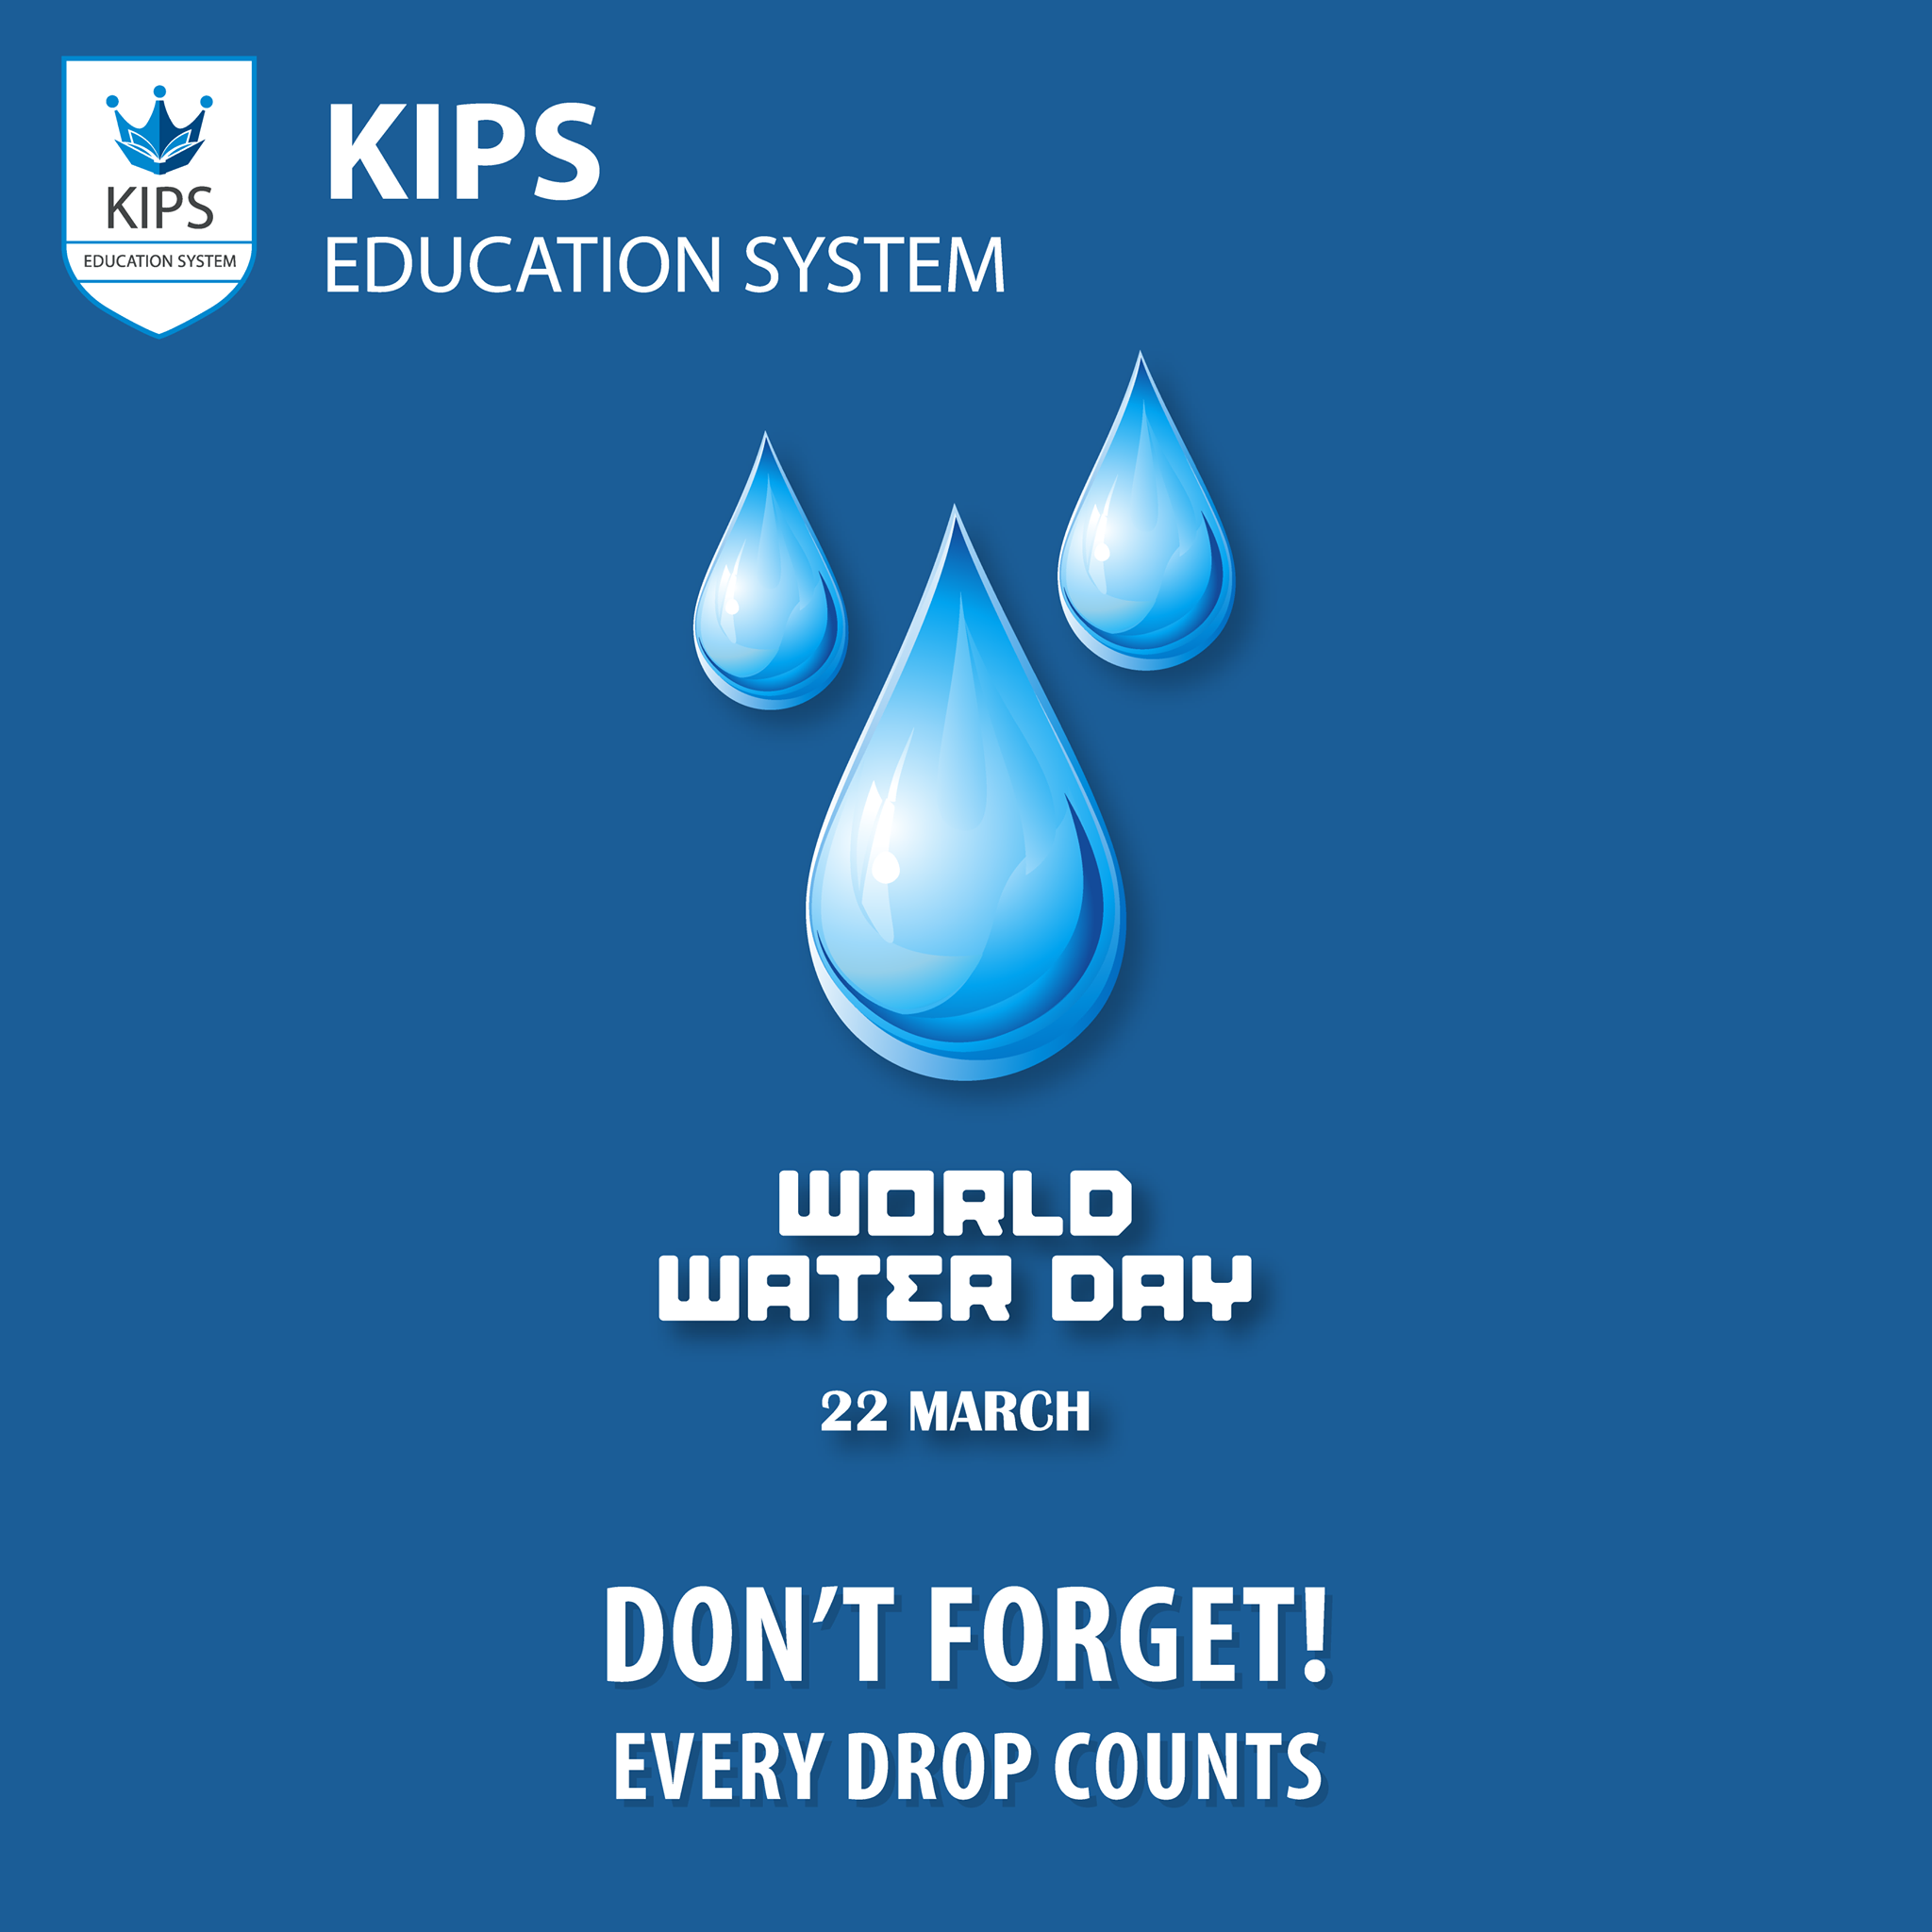 Every drop in the ocean counts  When we conserve water, we conserve